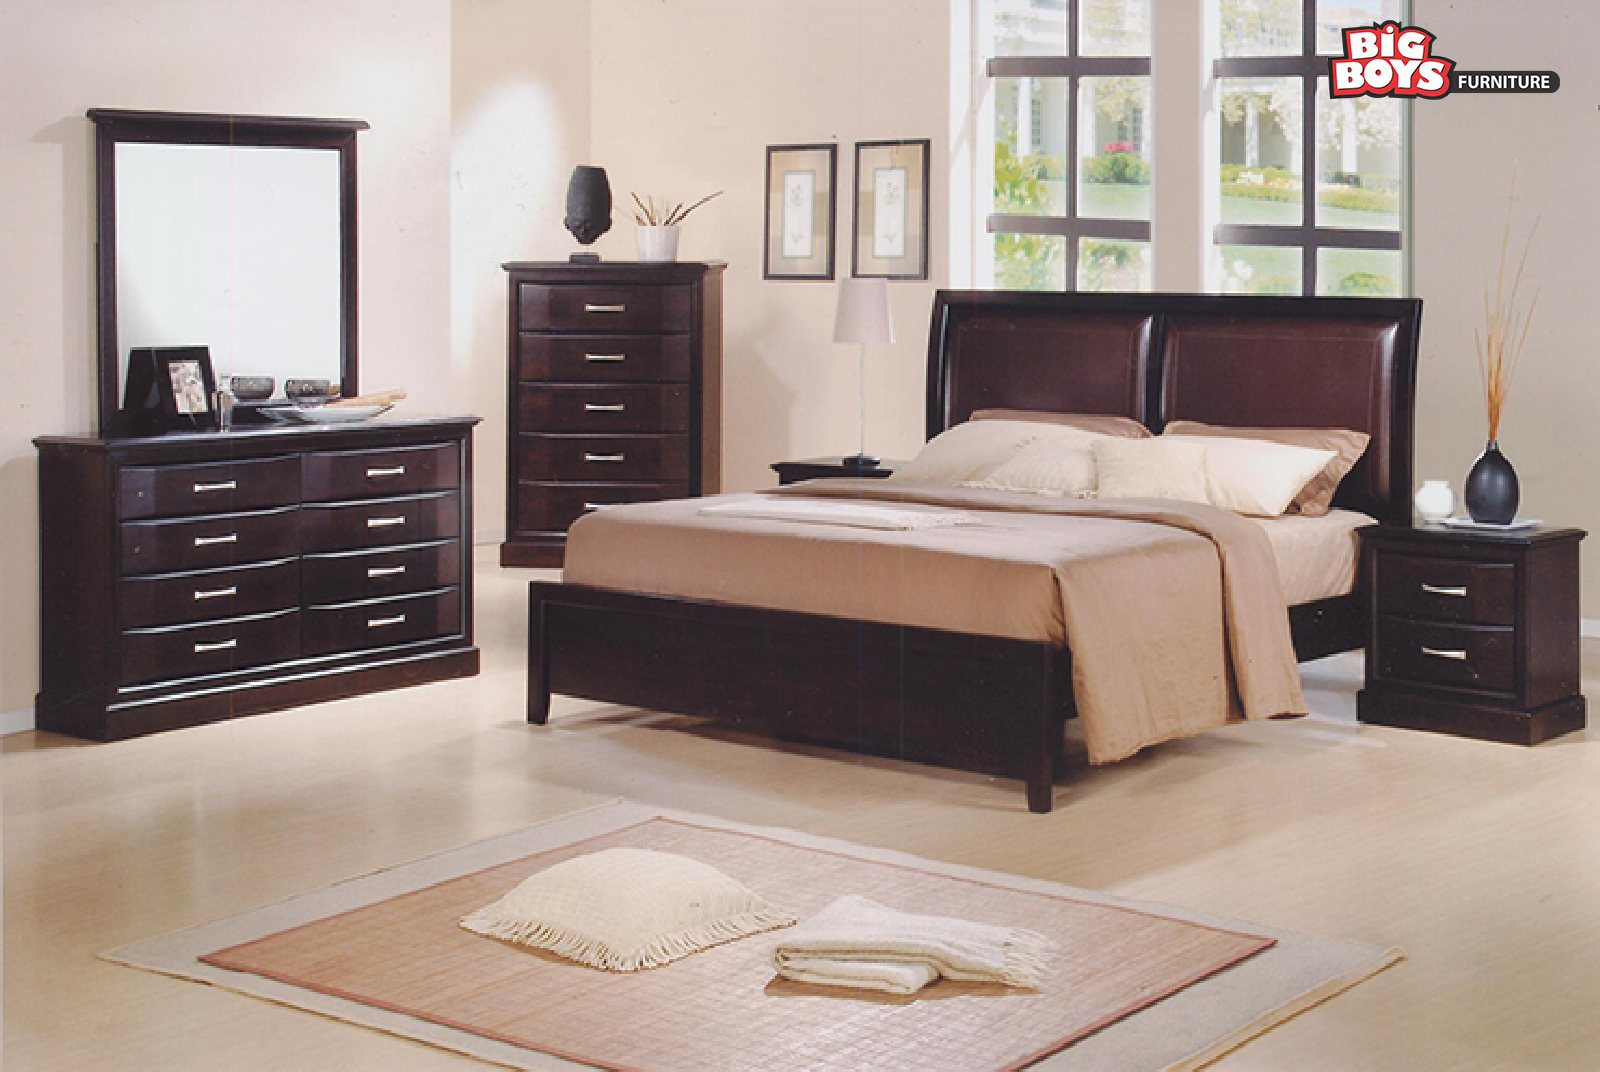 Bedroom suites at discounted prices available at Big Boys Furniture Delta/Surrey